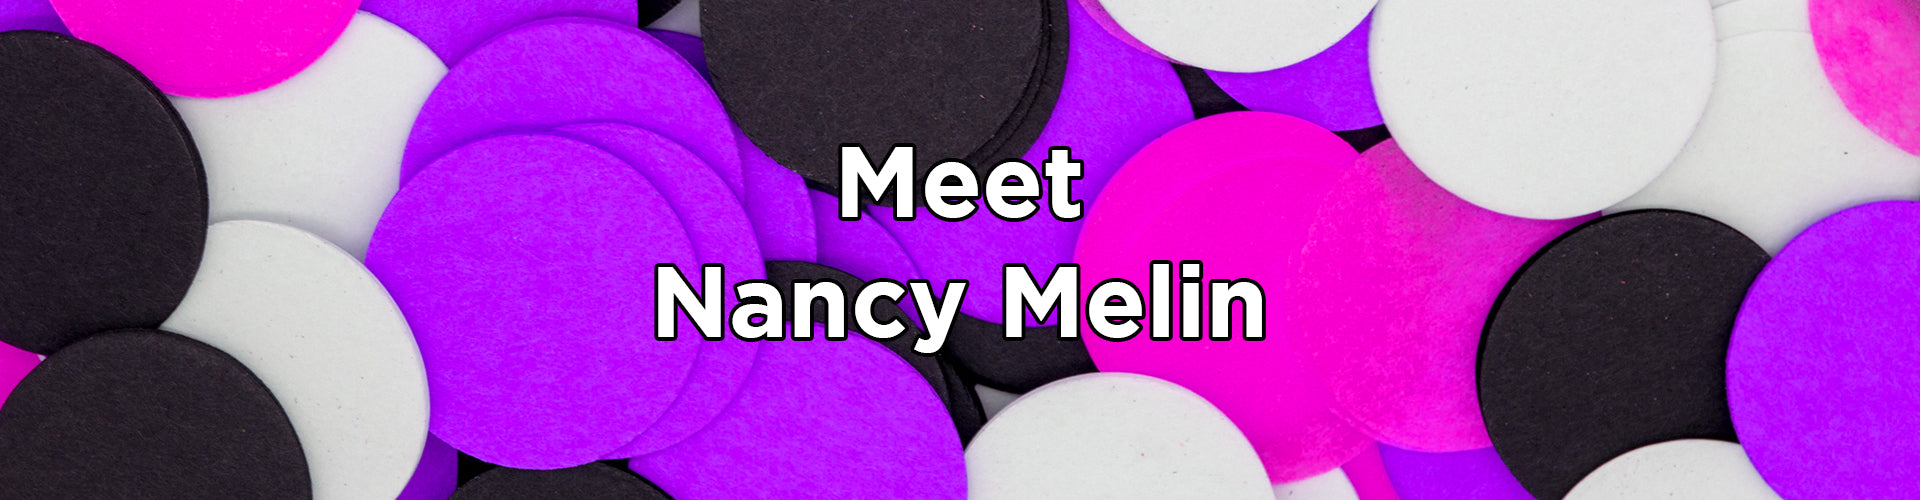 Meet Nancy Melin